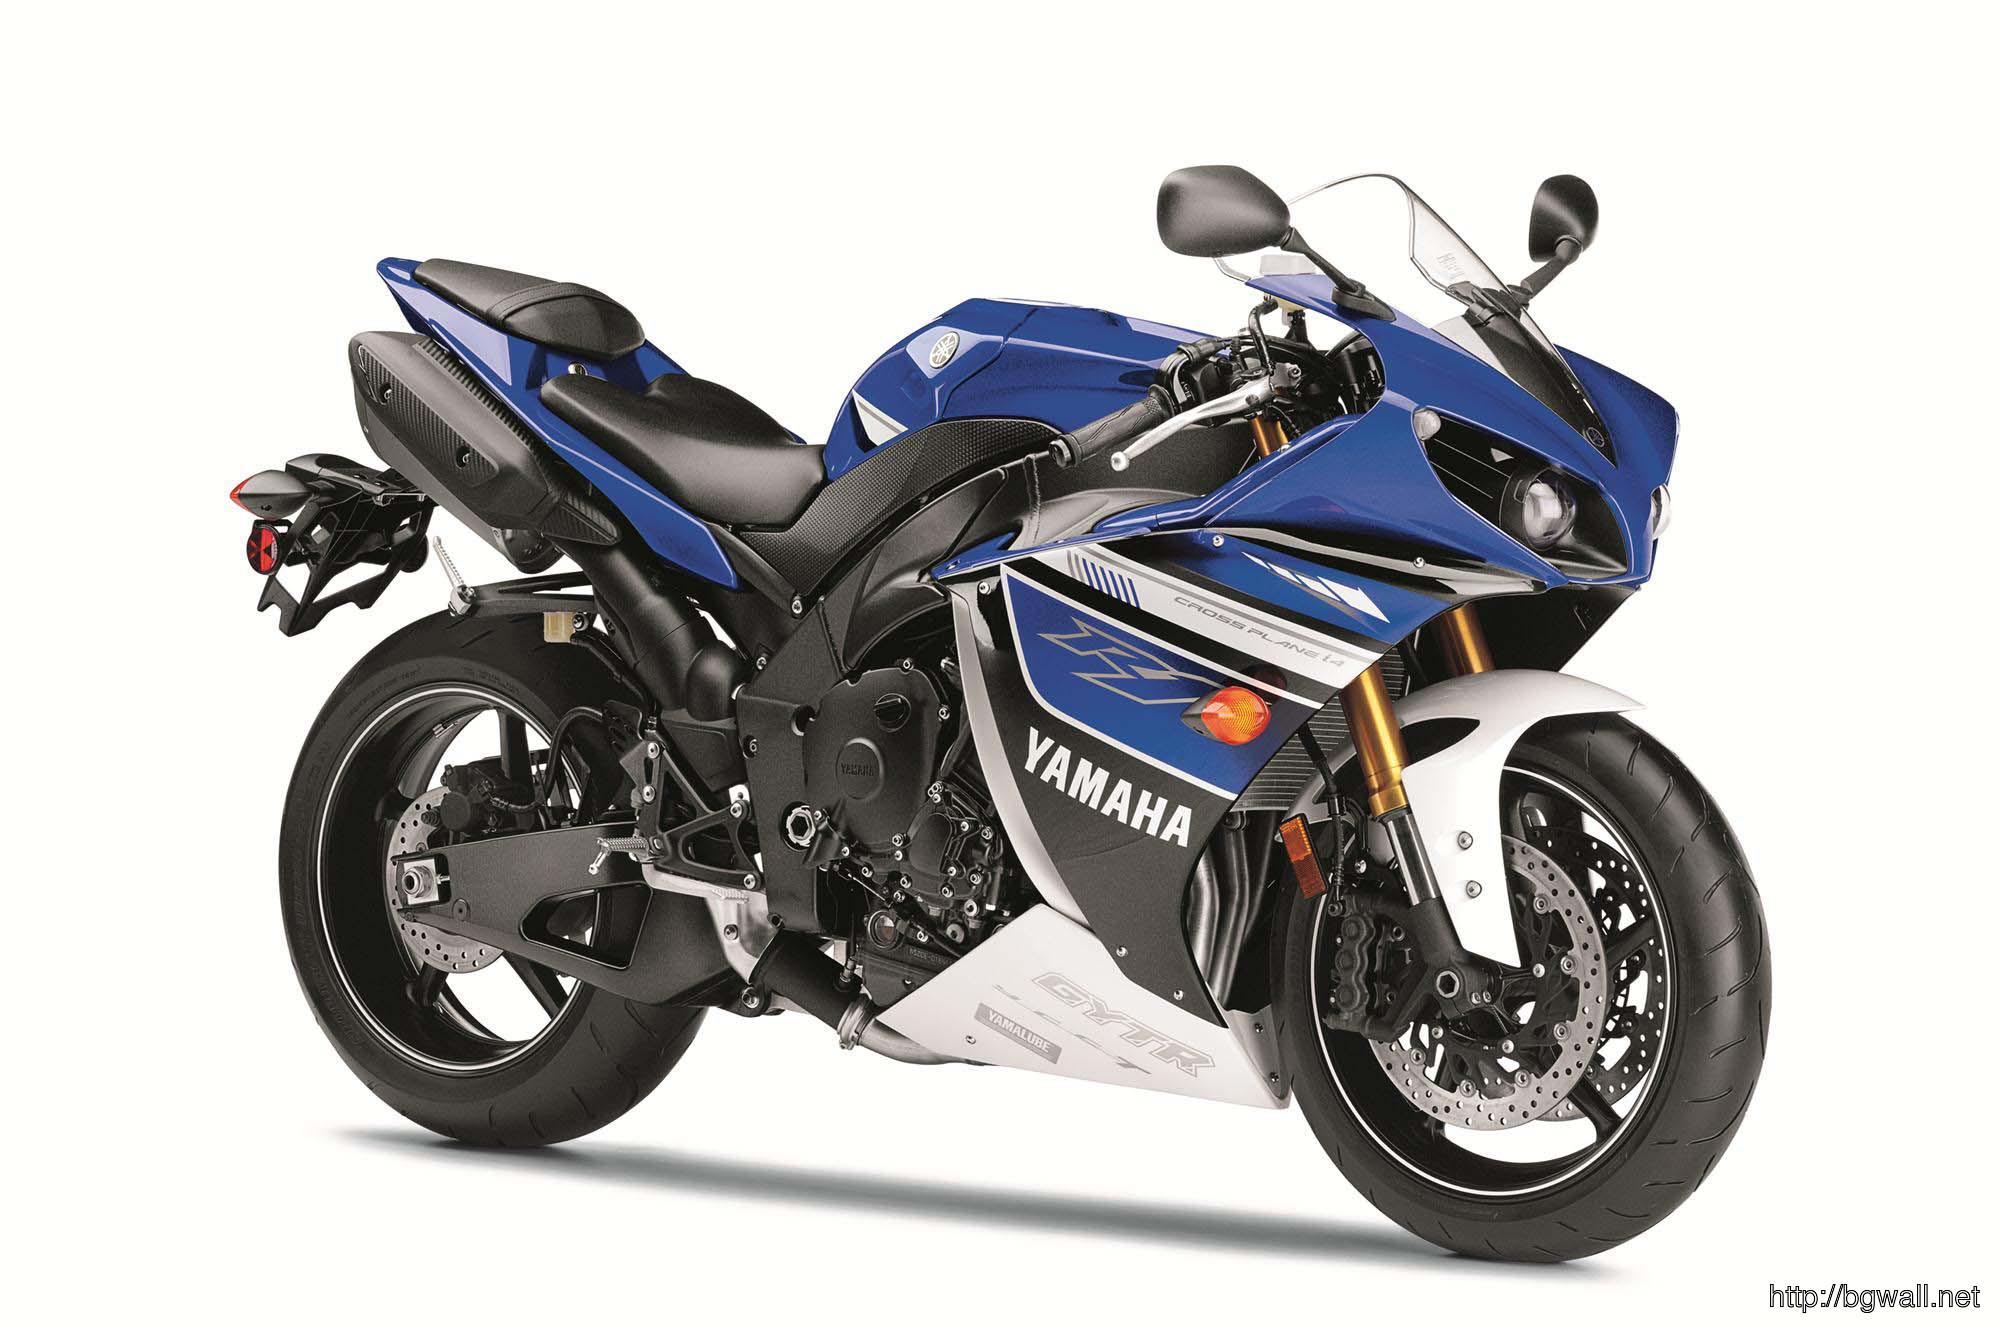 New Colors Only For The 2013 Yamaha Yzf Full Size